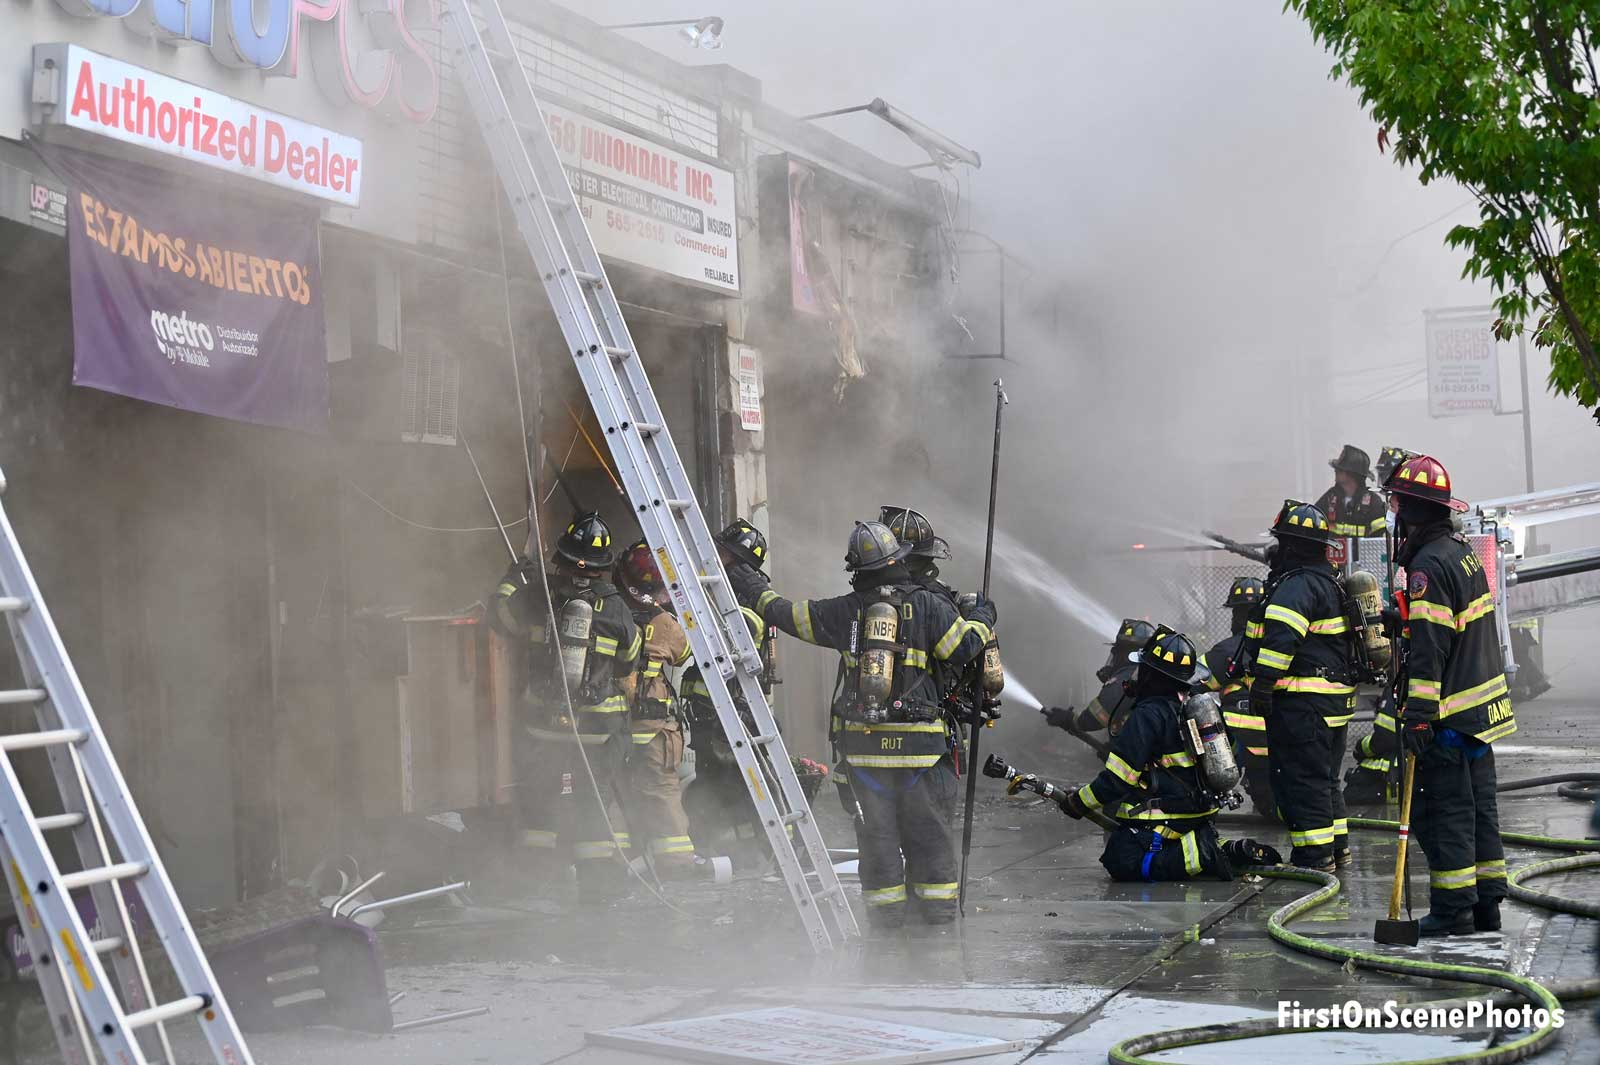 Firefighters with a ladder outside a smoky business